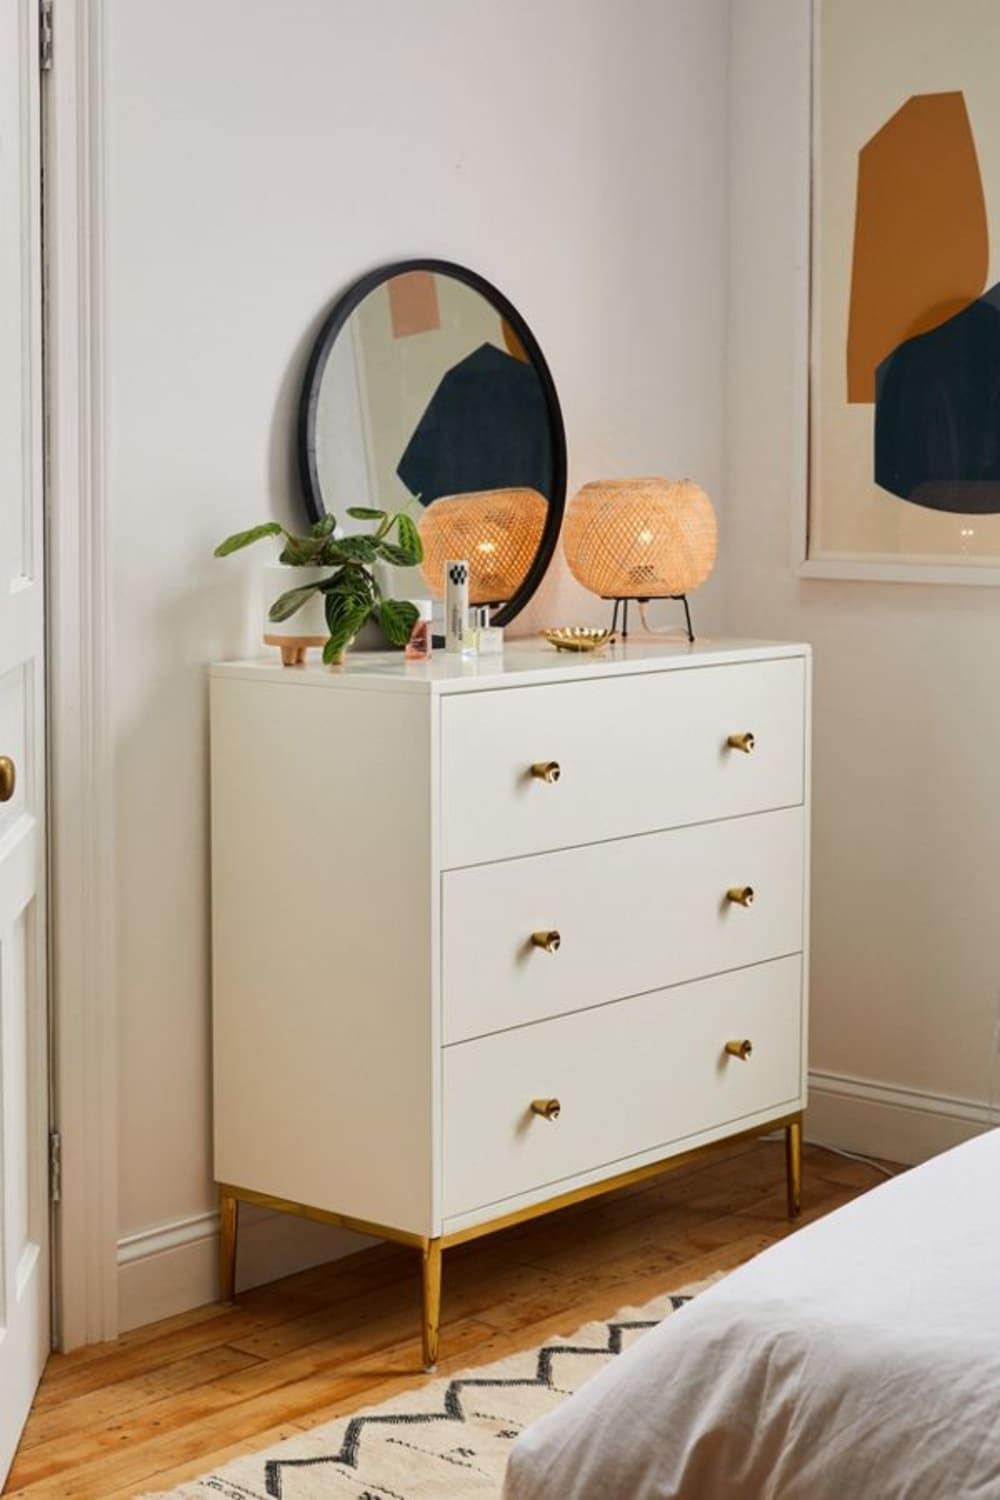 Urban Outfitters Black Friday Sale Is Here And Our Carts Are Already Full Bedroom Decor Design Bedroom Design Trends New Bedroom Design